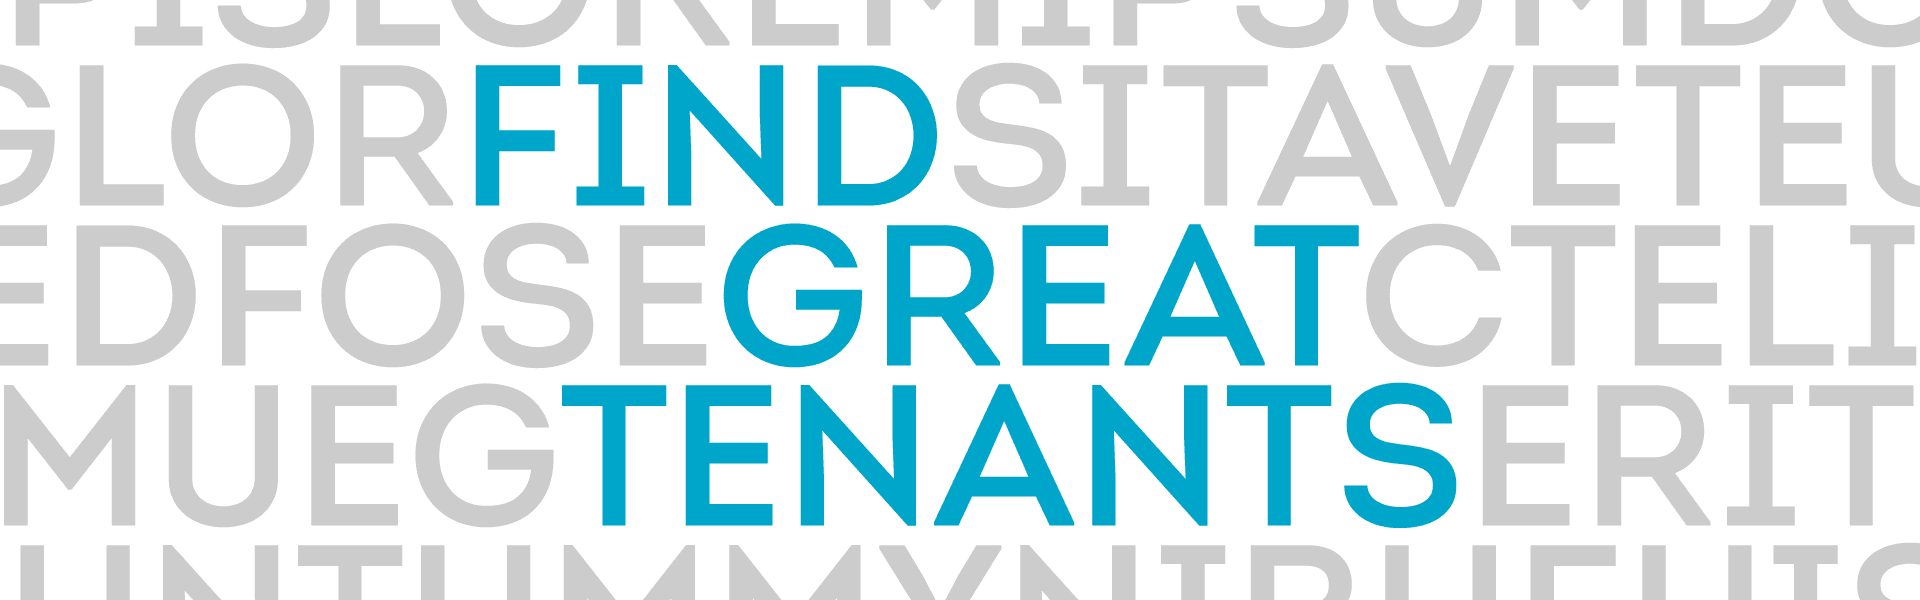 How to find great tenants best articles